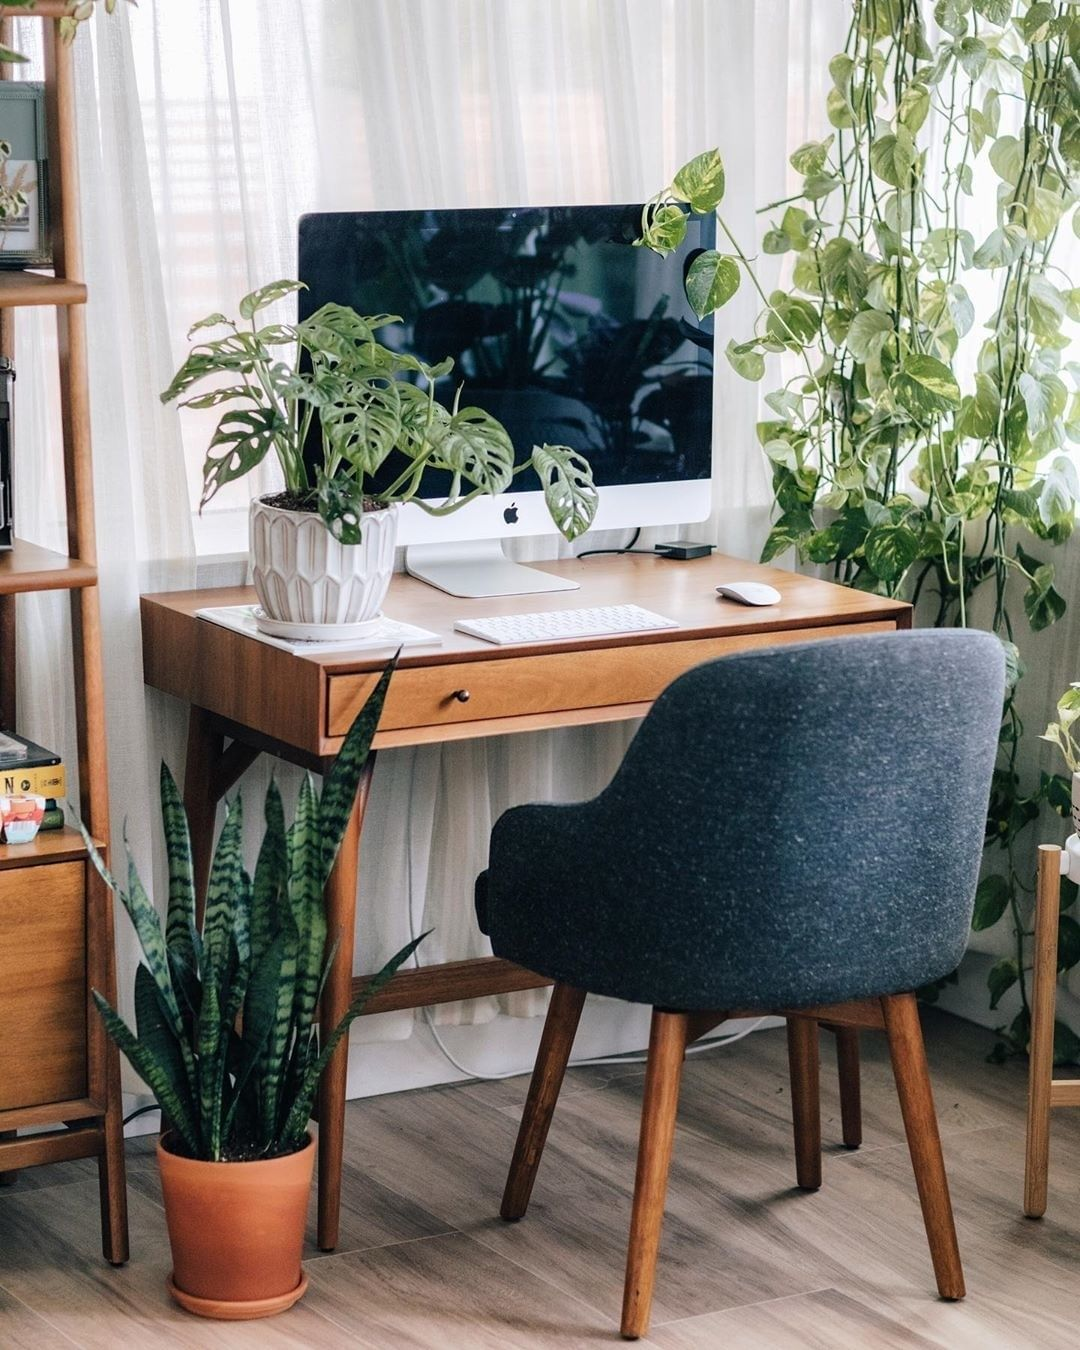 Boost Your Productivity By Adding Plants In Your Office Desk It S Good To Look At In Cas Mid Century Mini Desk Desks For Small Spaces Mid Century Modern Desk